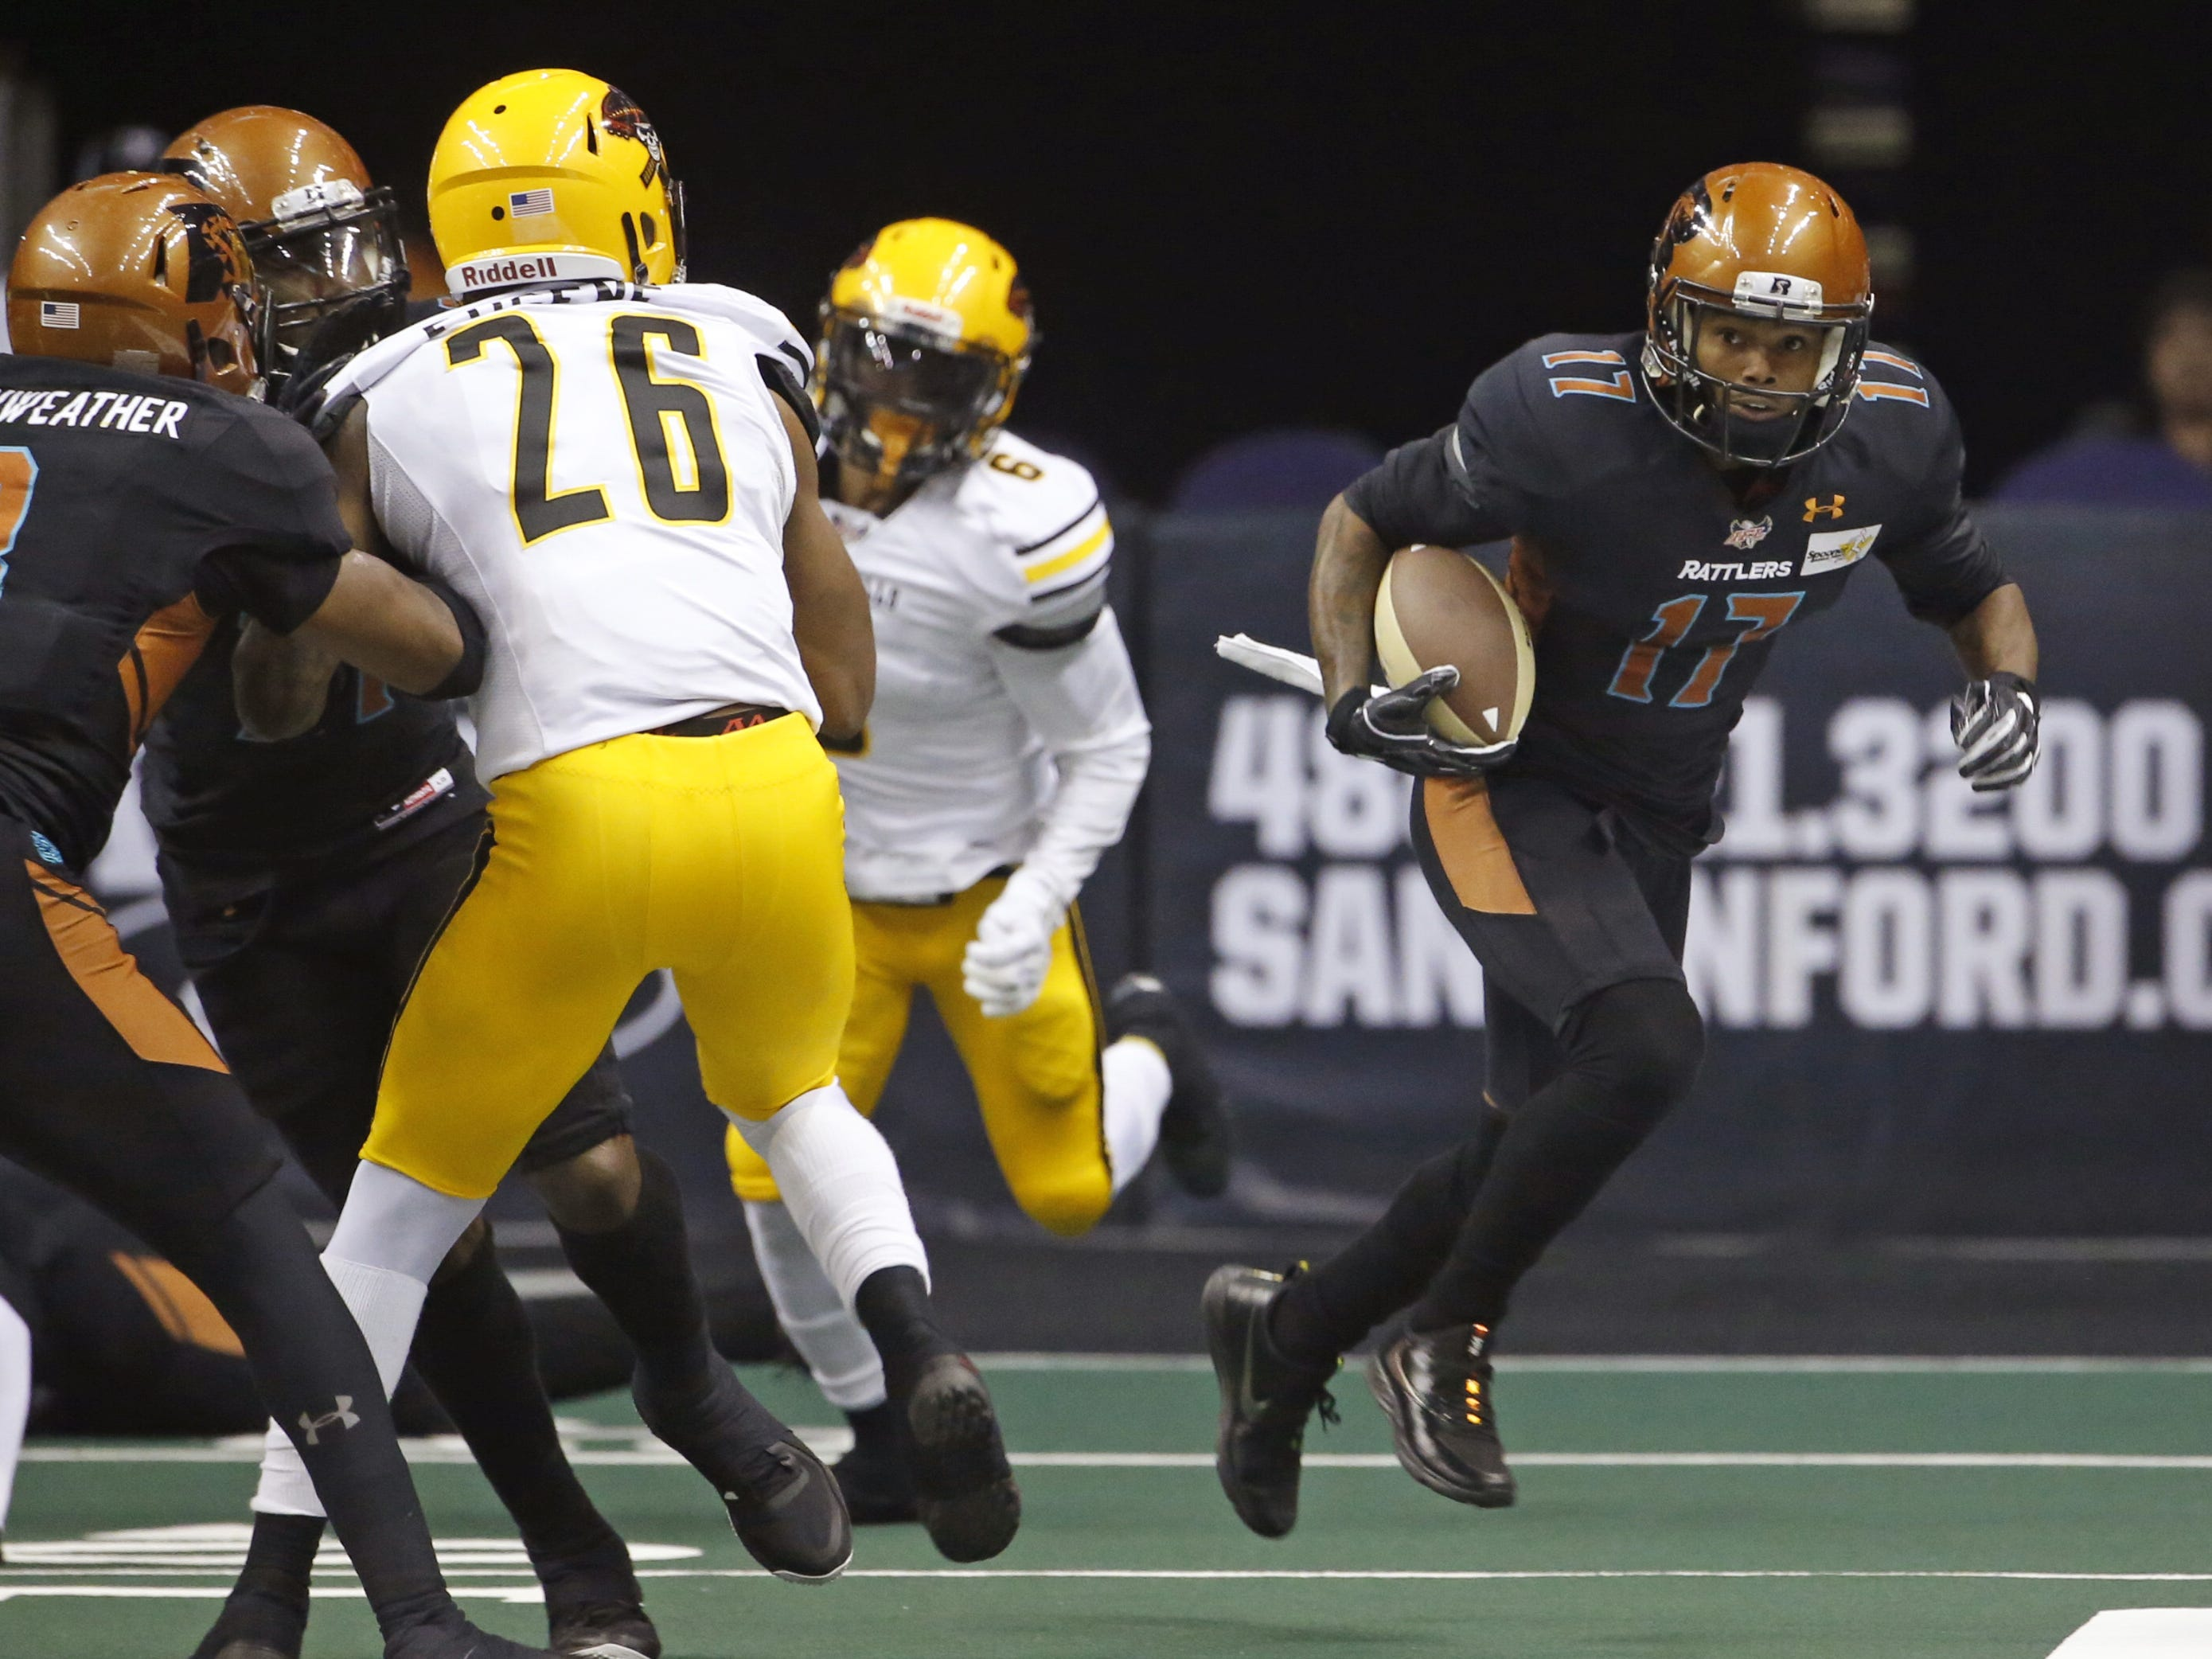 Rattlers' Desmond Epps (17) returns a kick against the Sugar Skulls during the first half at Talking Stick Resort Arena in Phoenix, Ariz. on March 16, 2019.